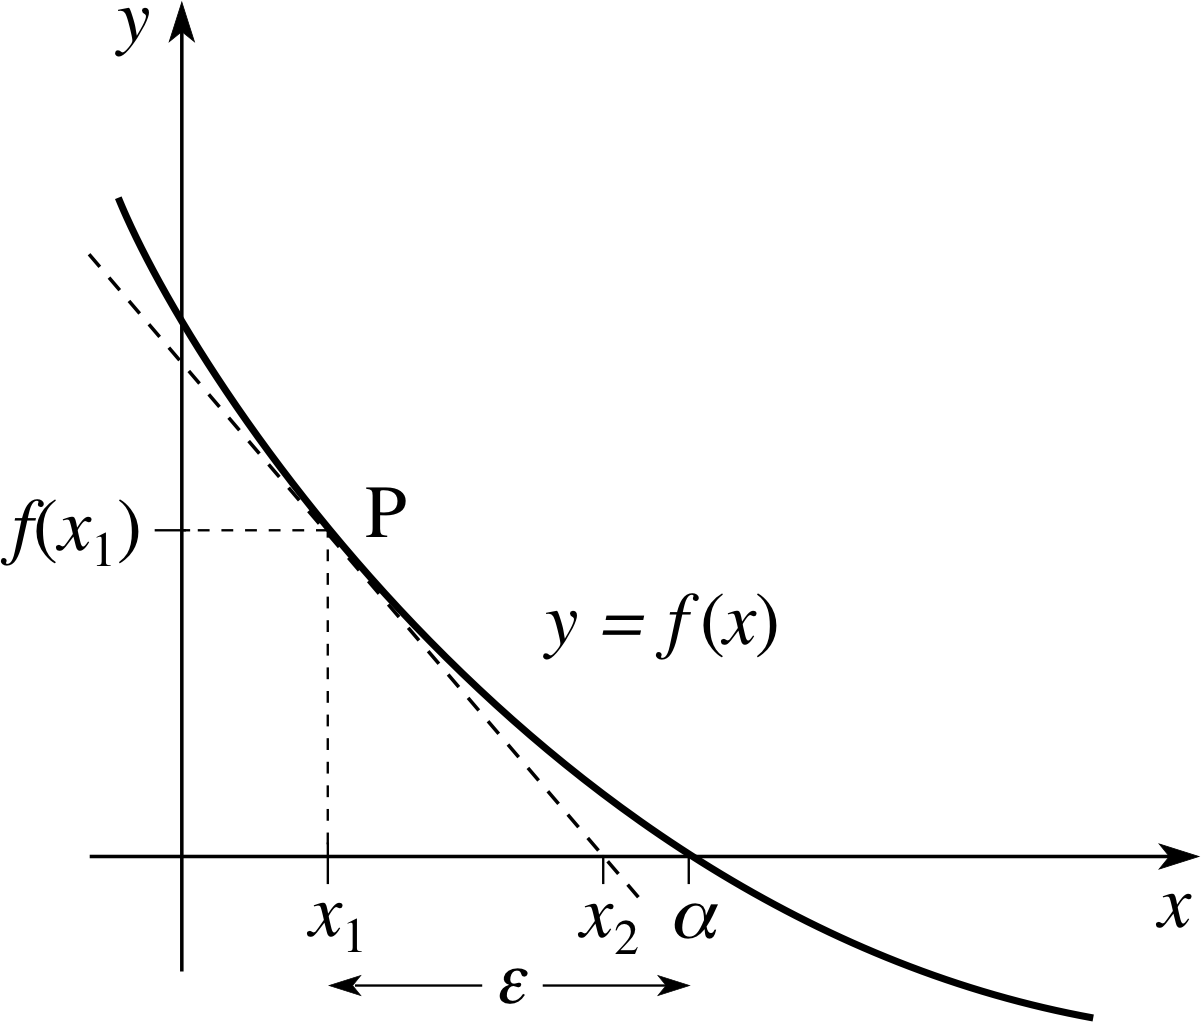 PPLATO | FLAP | MATH 4 5: Taylor expansions and polynomial